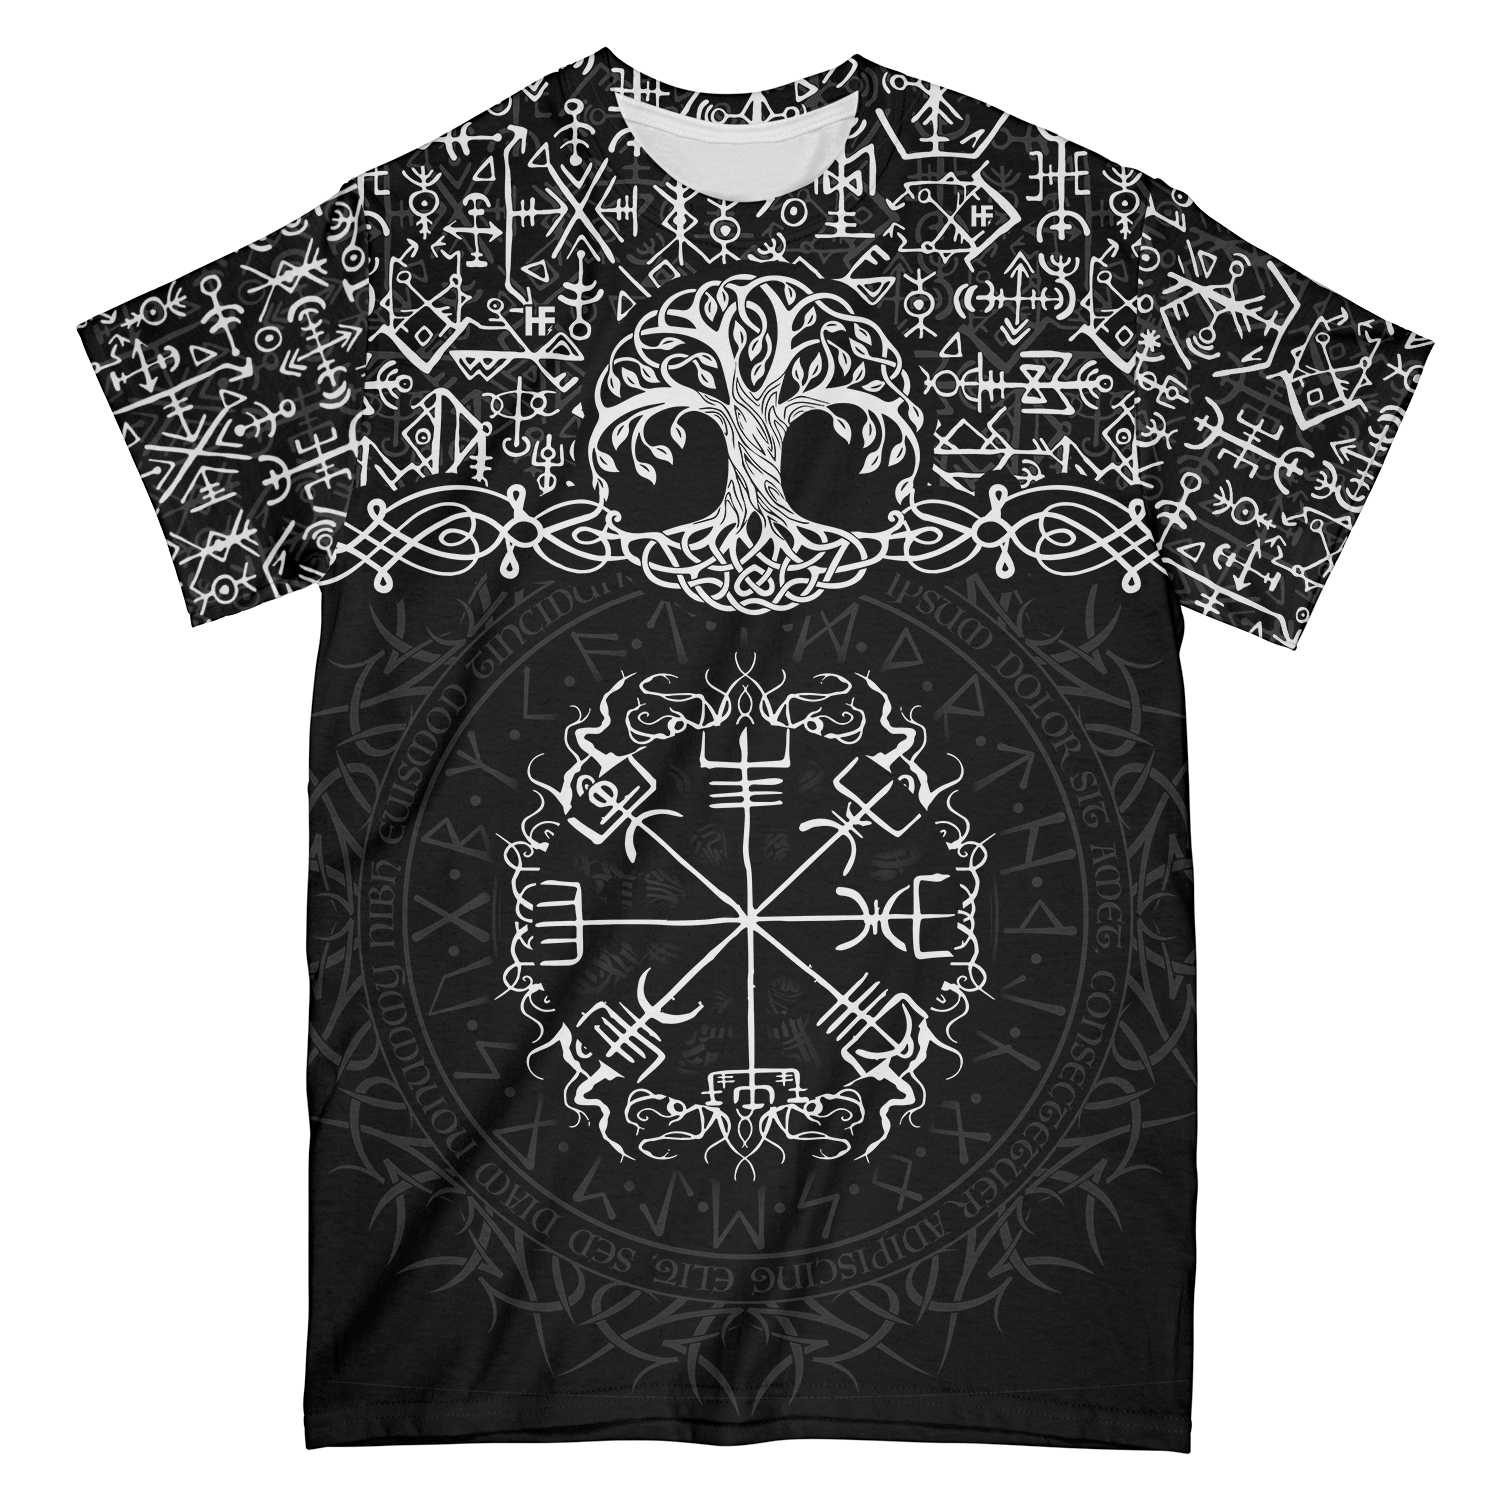 Yggdrasil Viking EZ22 2312 All Over Print T-shirt